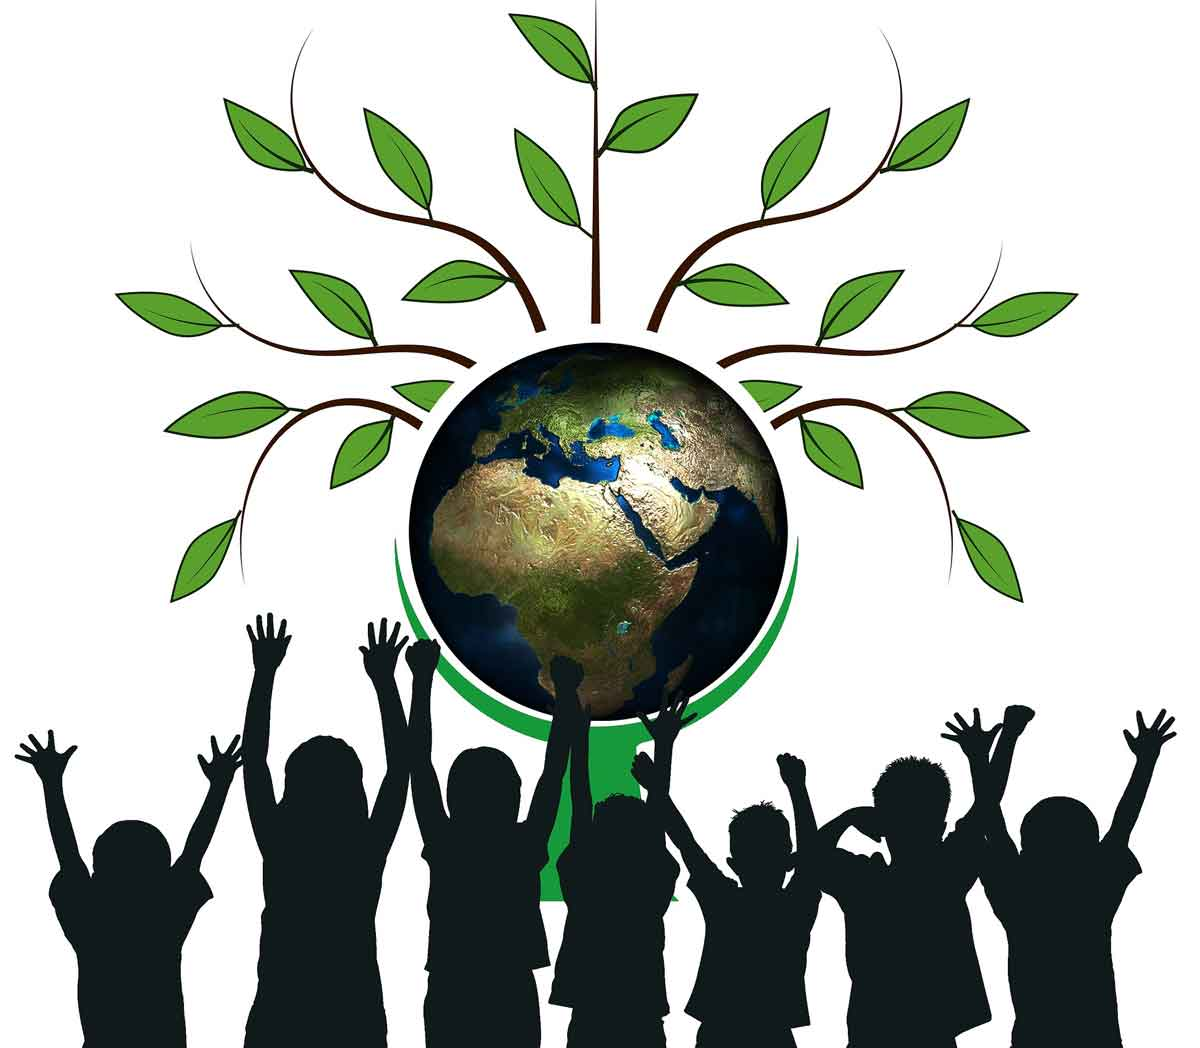 Children with our planet Earth